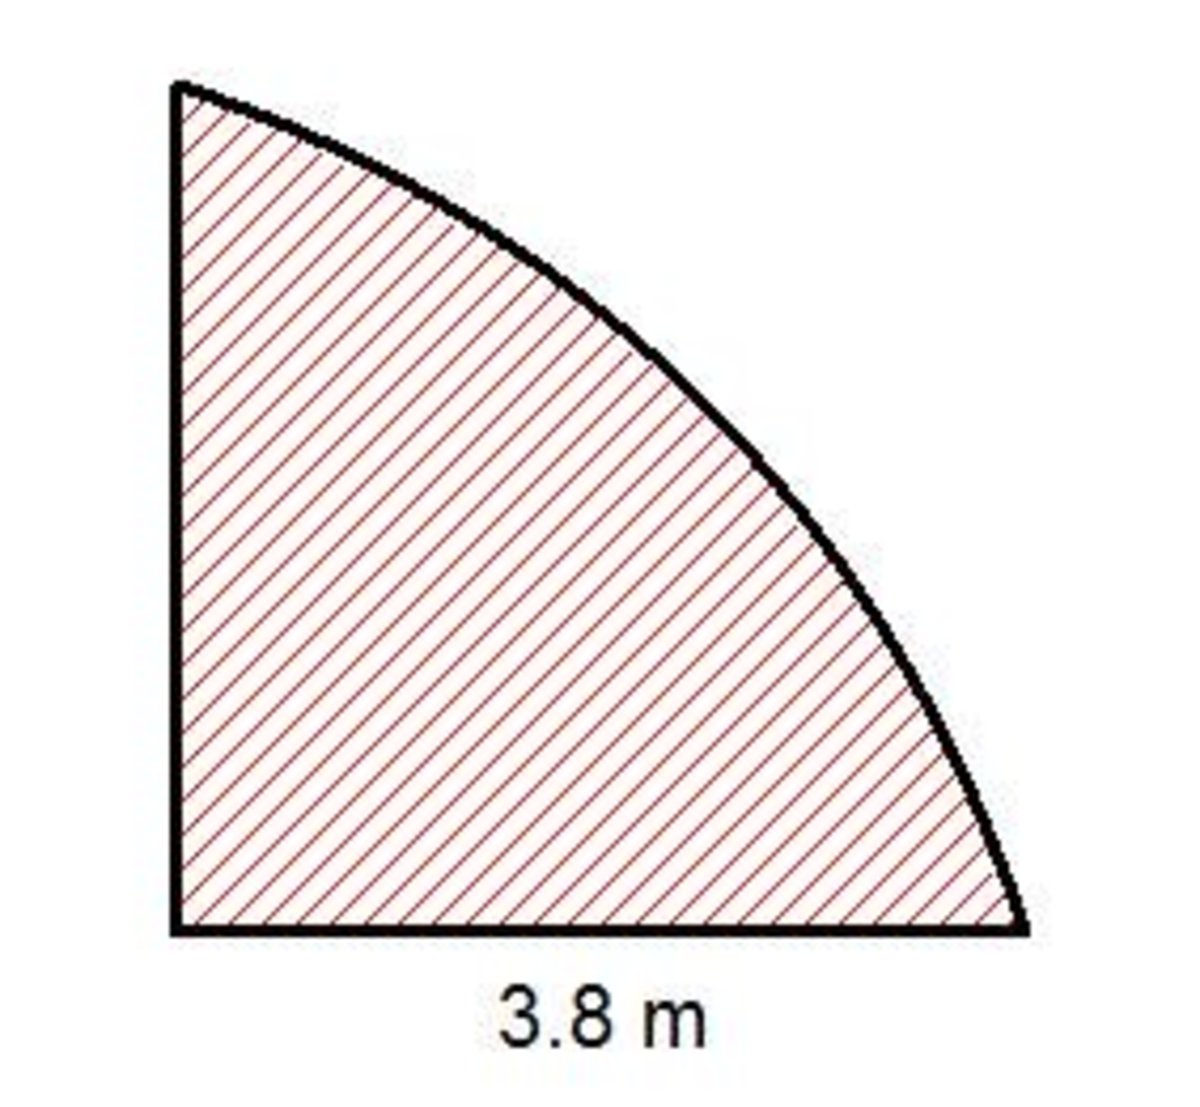 How To Find The Area Of A Quadrant A Quarter Of A Circle